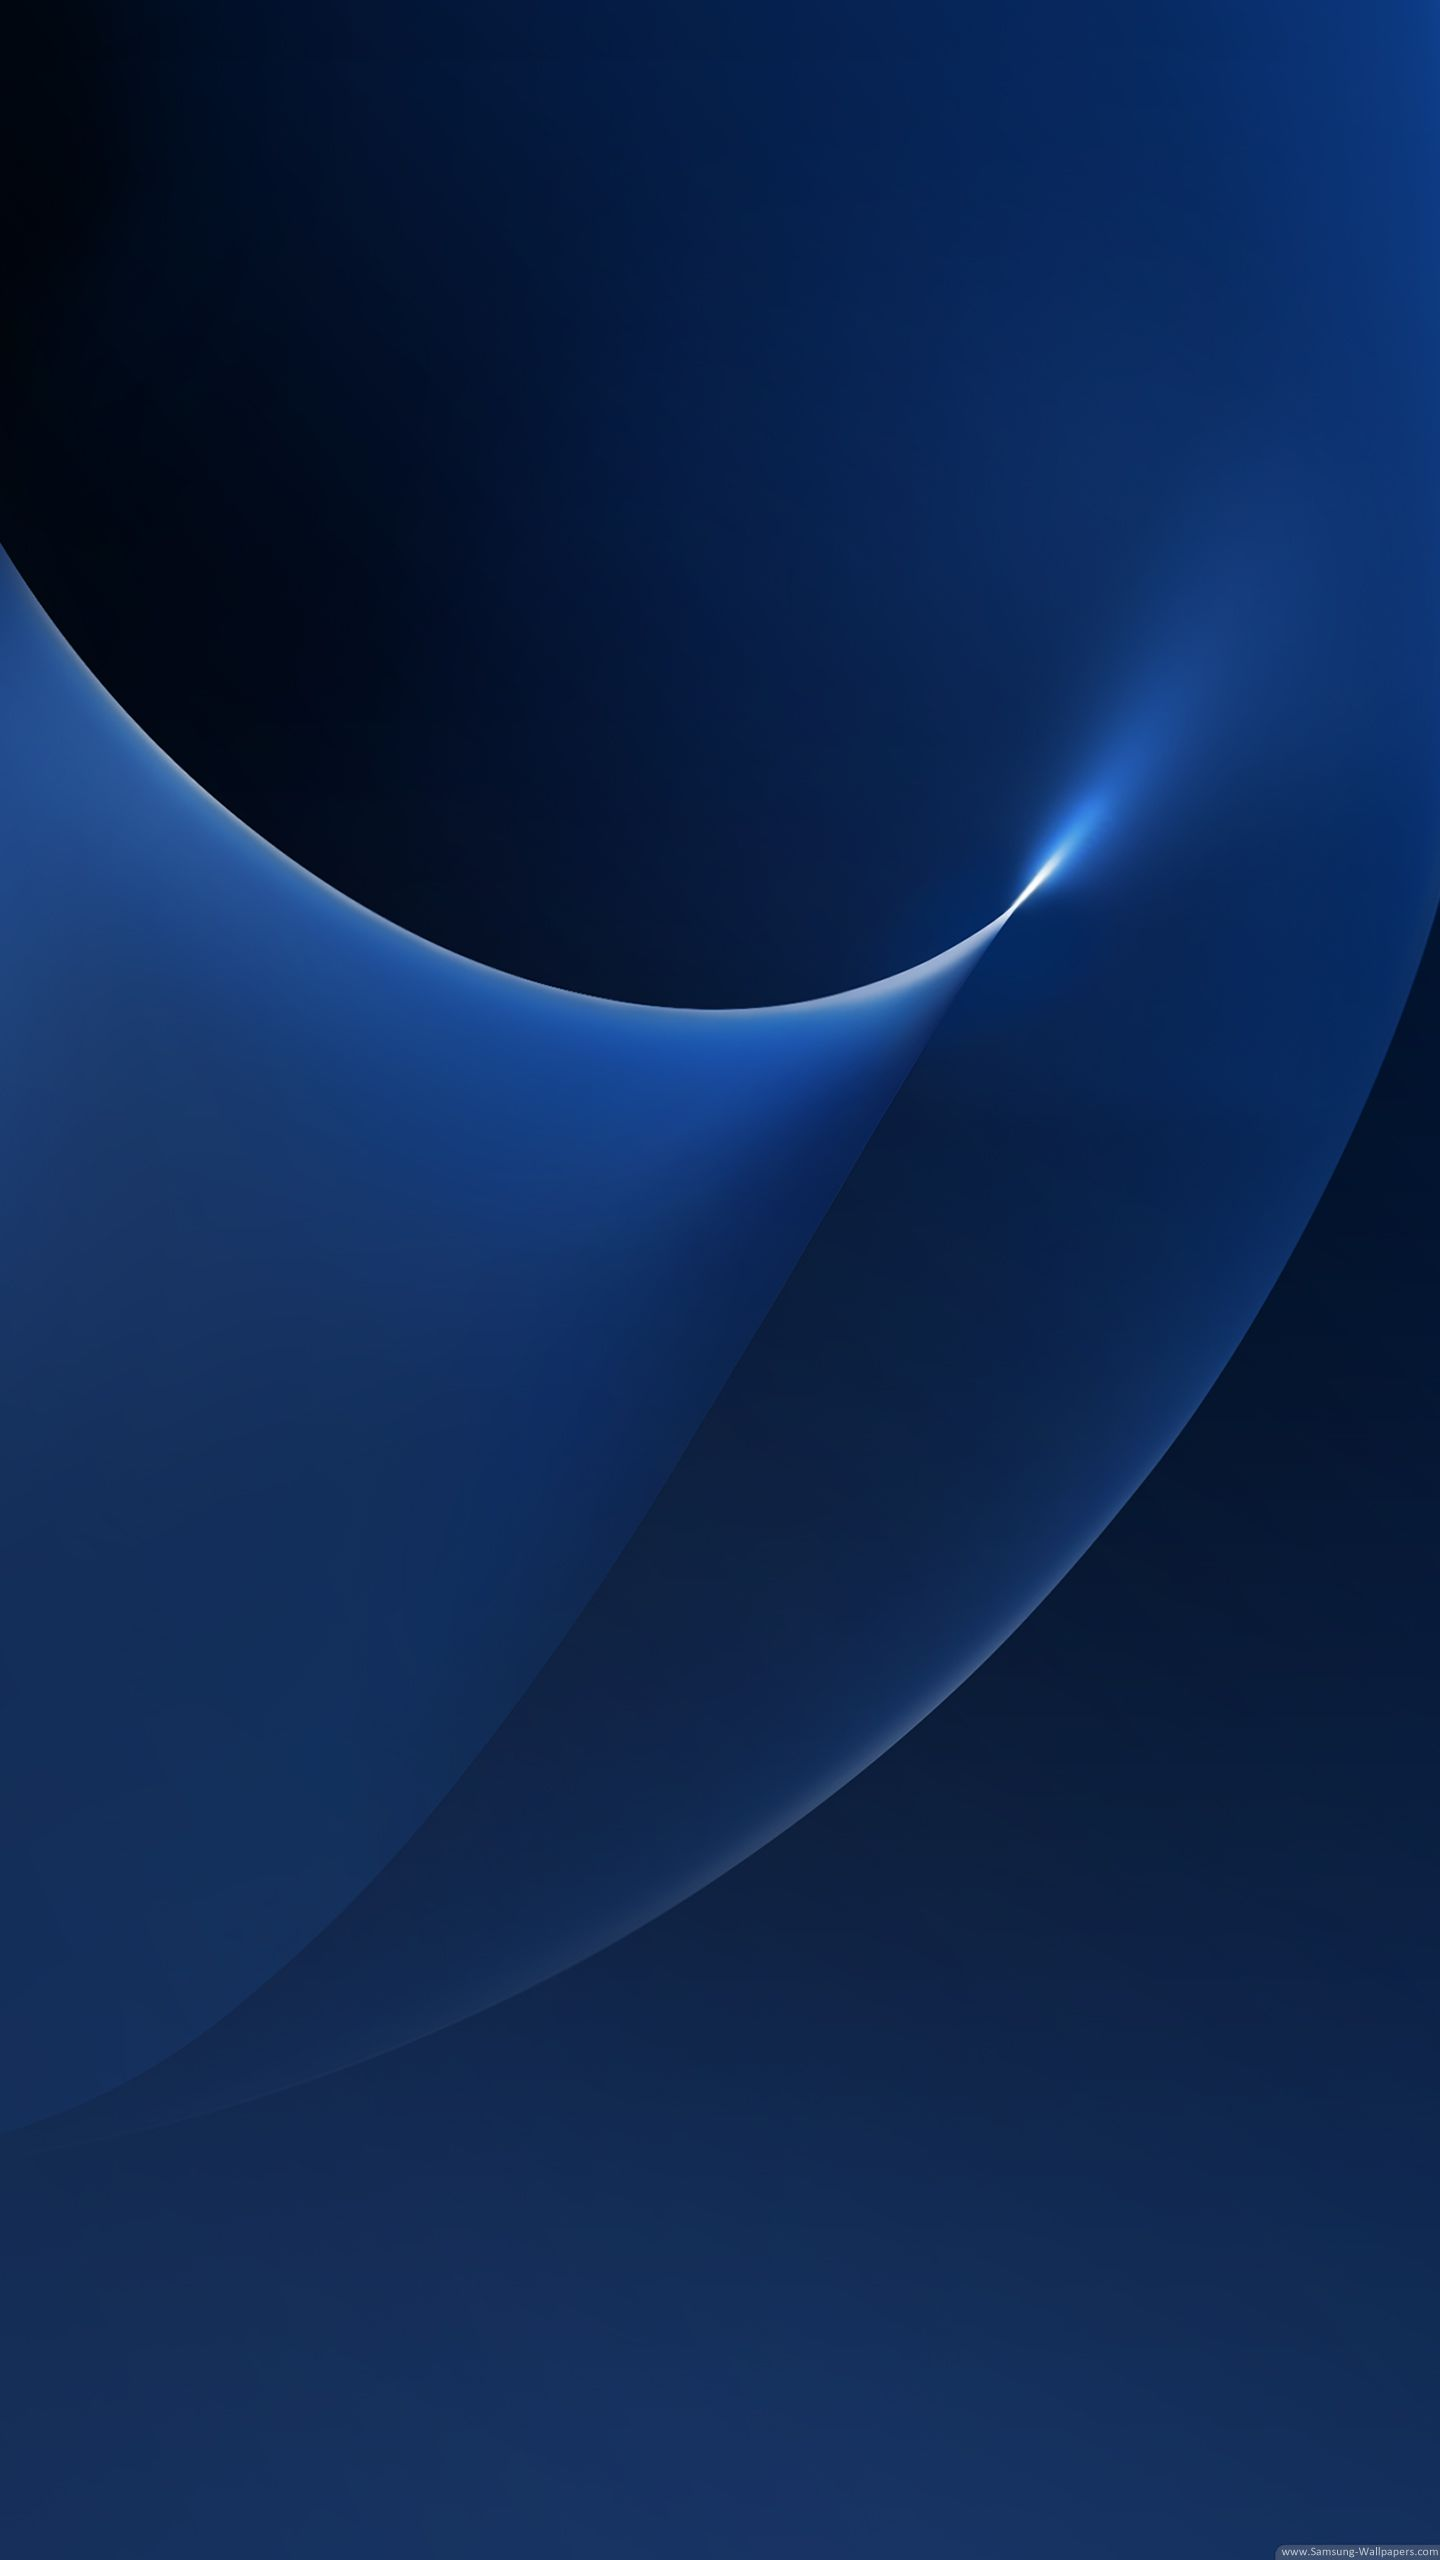 Samsung Wallpaper S7 Walpaper Iphone Wallpaper Wallpaper